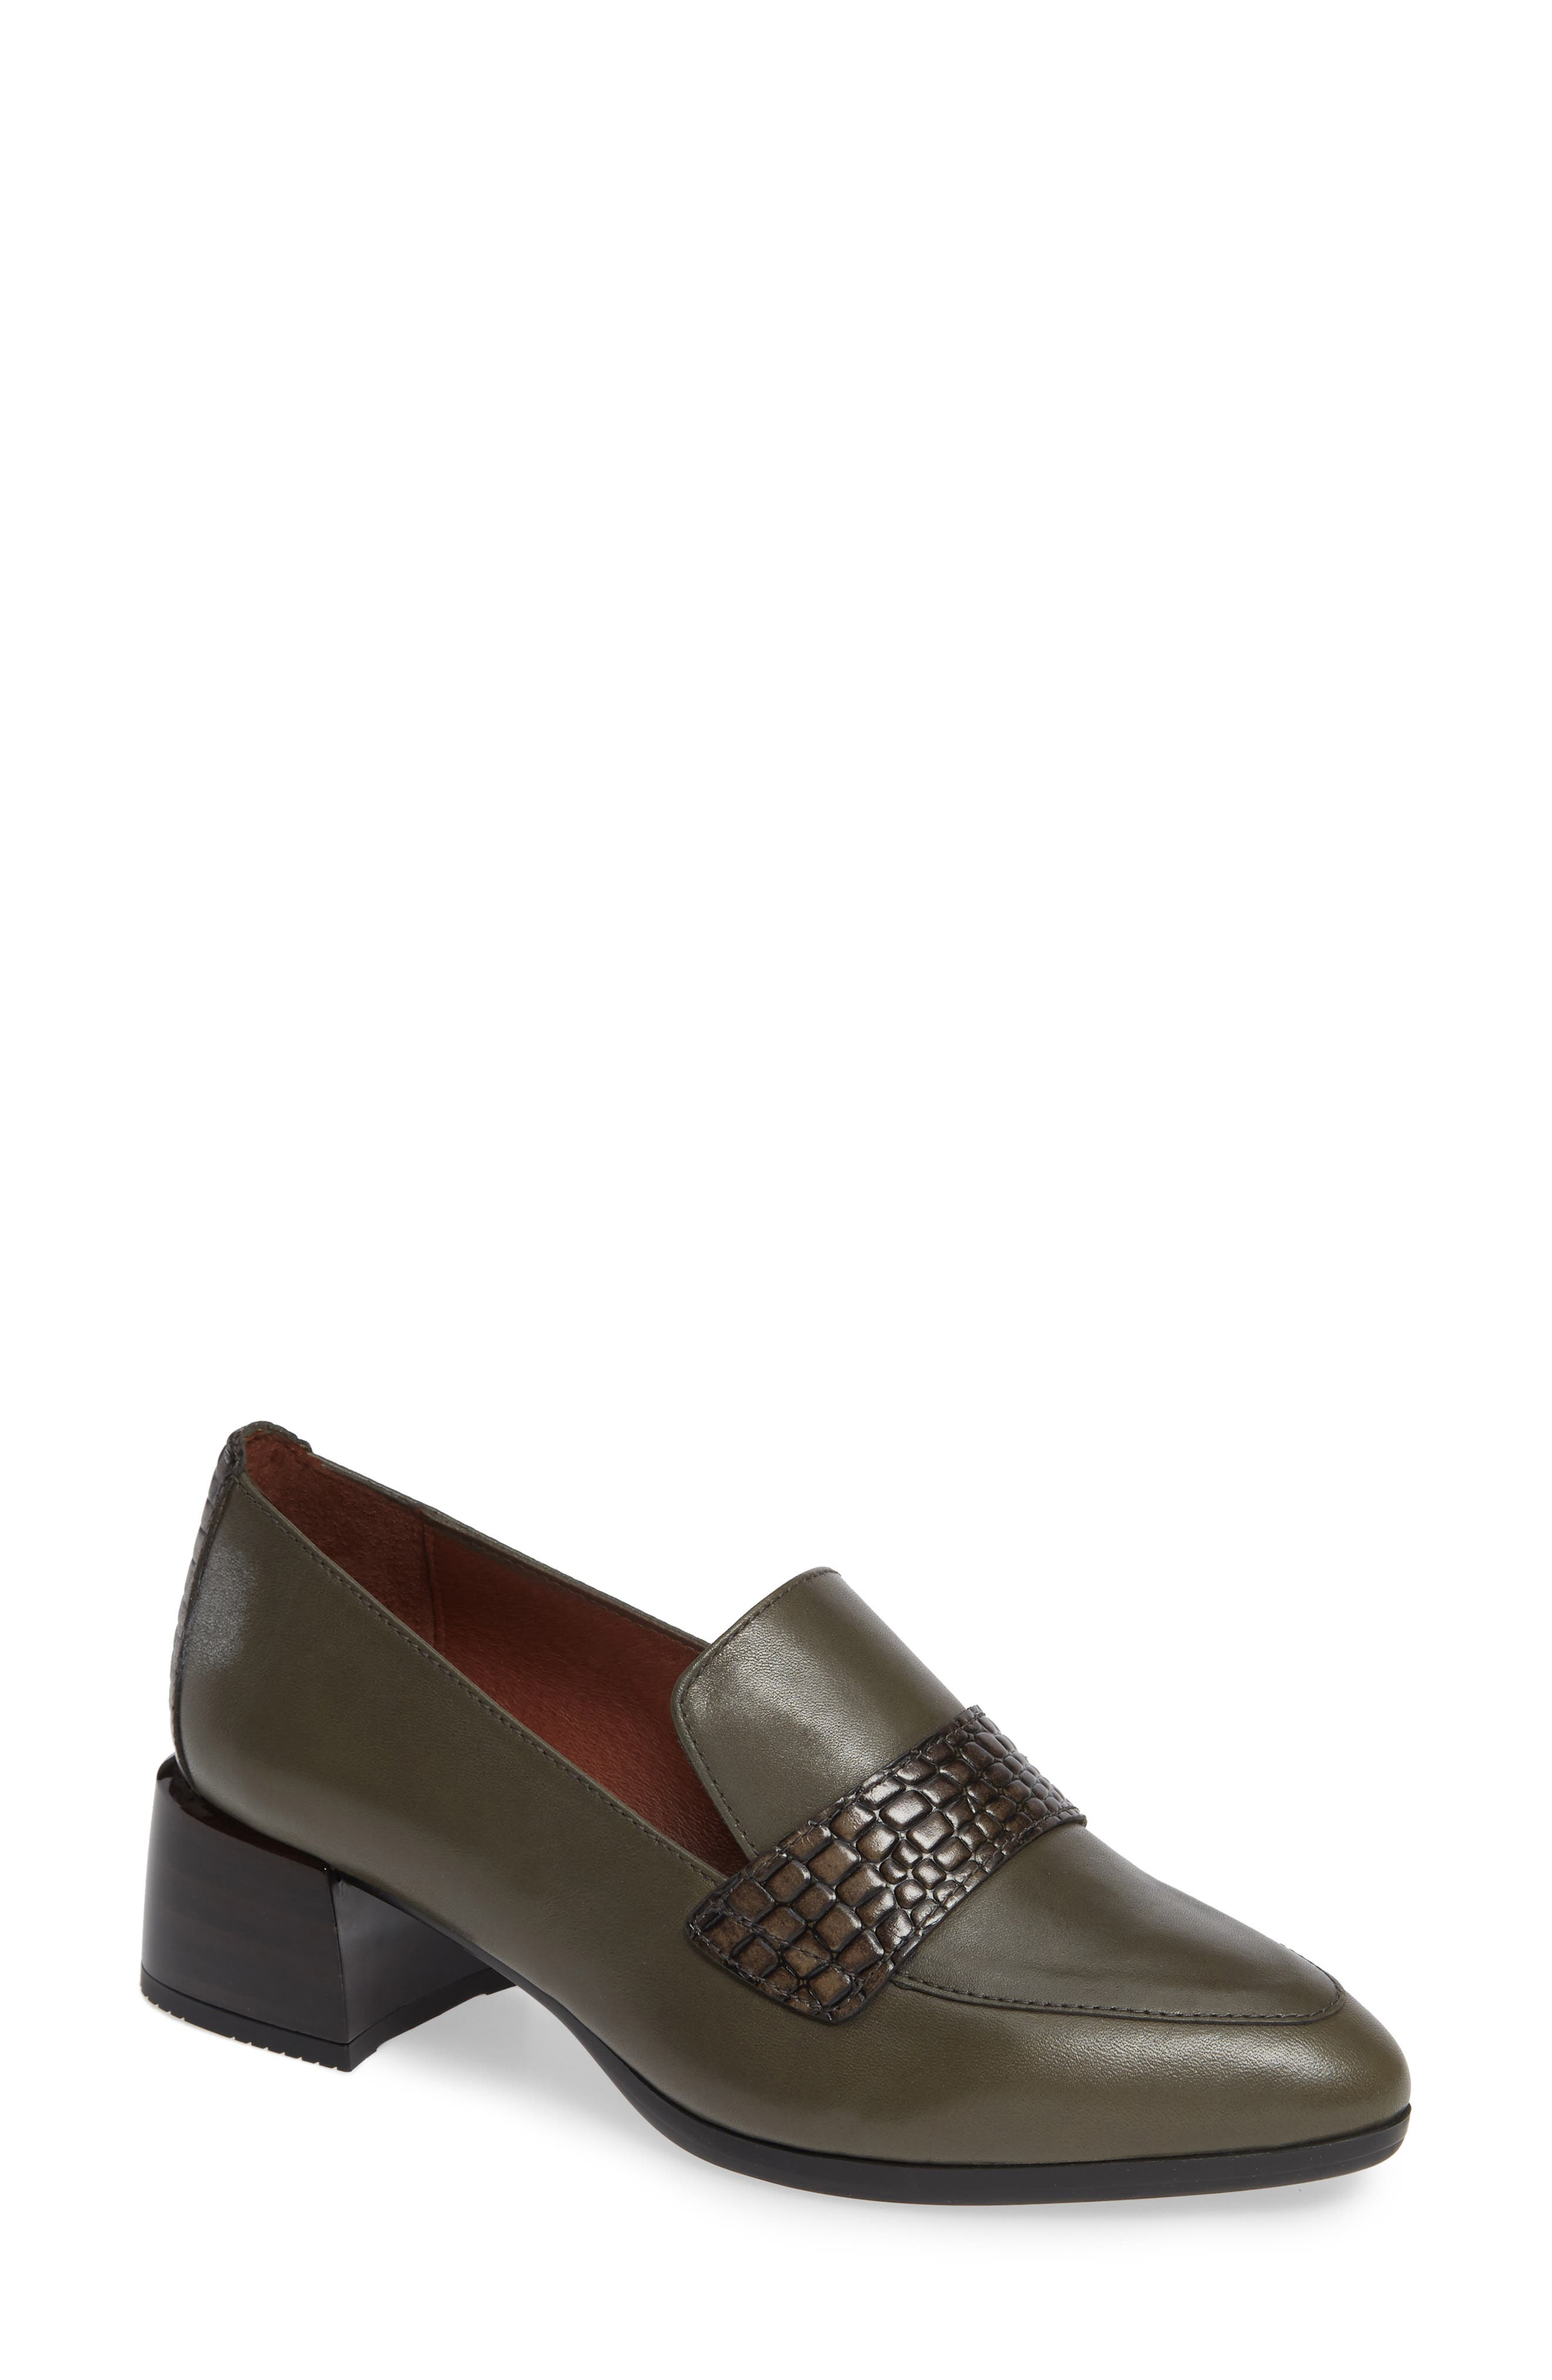 HISPANITAS Gabrianna Block Heel Loafer, Main, color, SOHO ARMY/ CAIMAN ARMY LEATHER